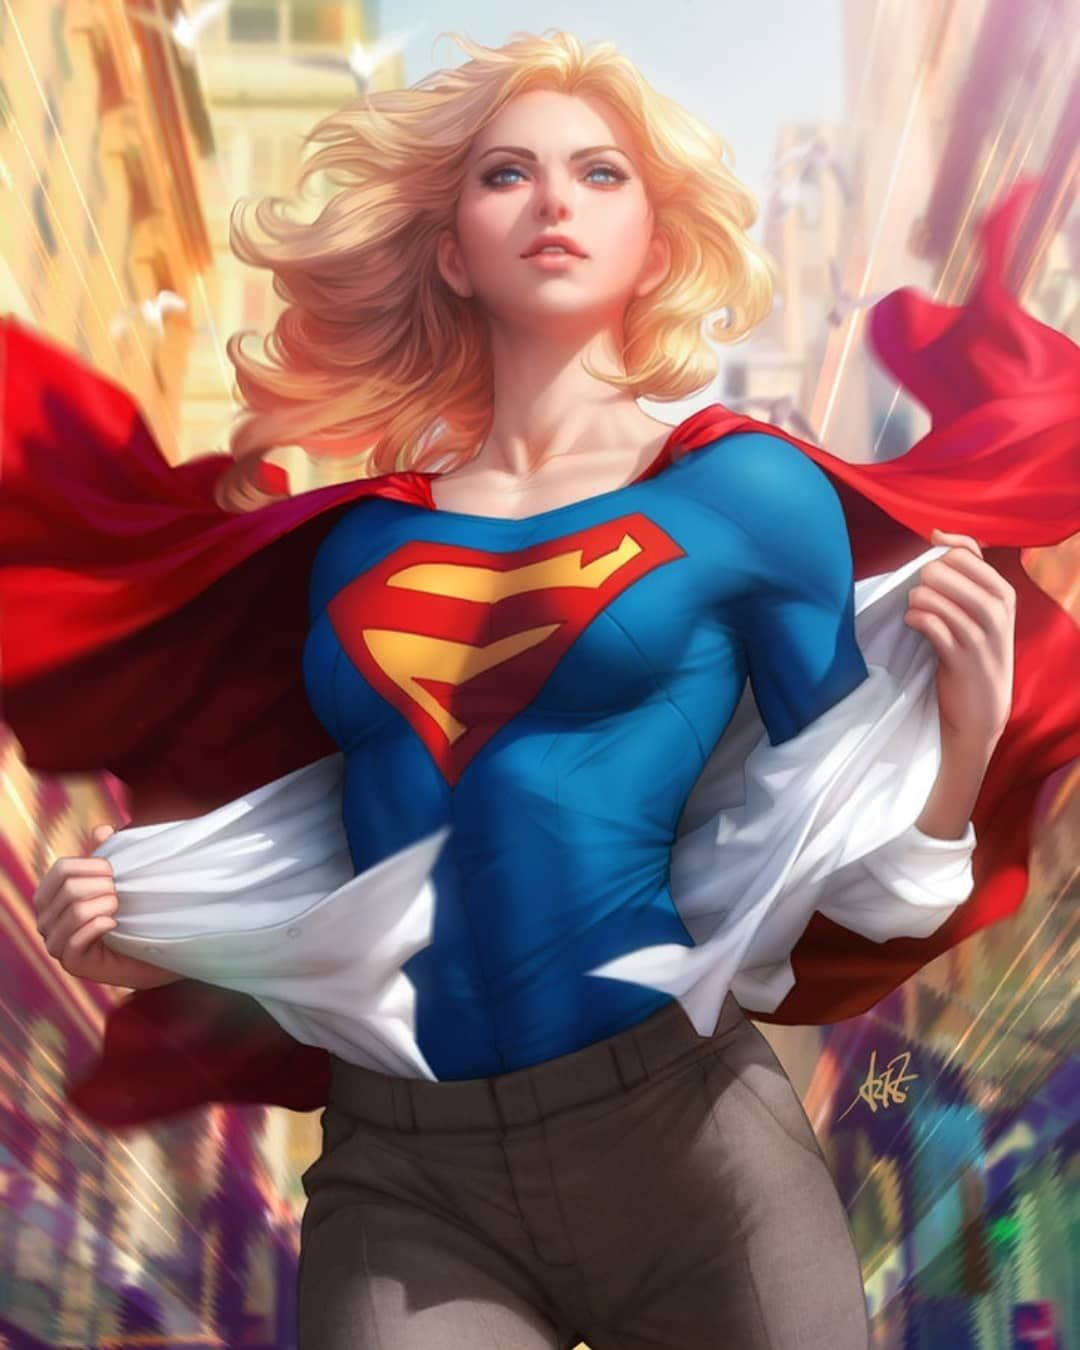 Supergirl stripped